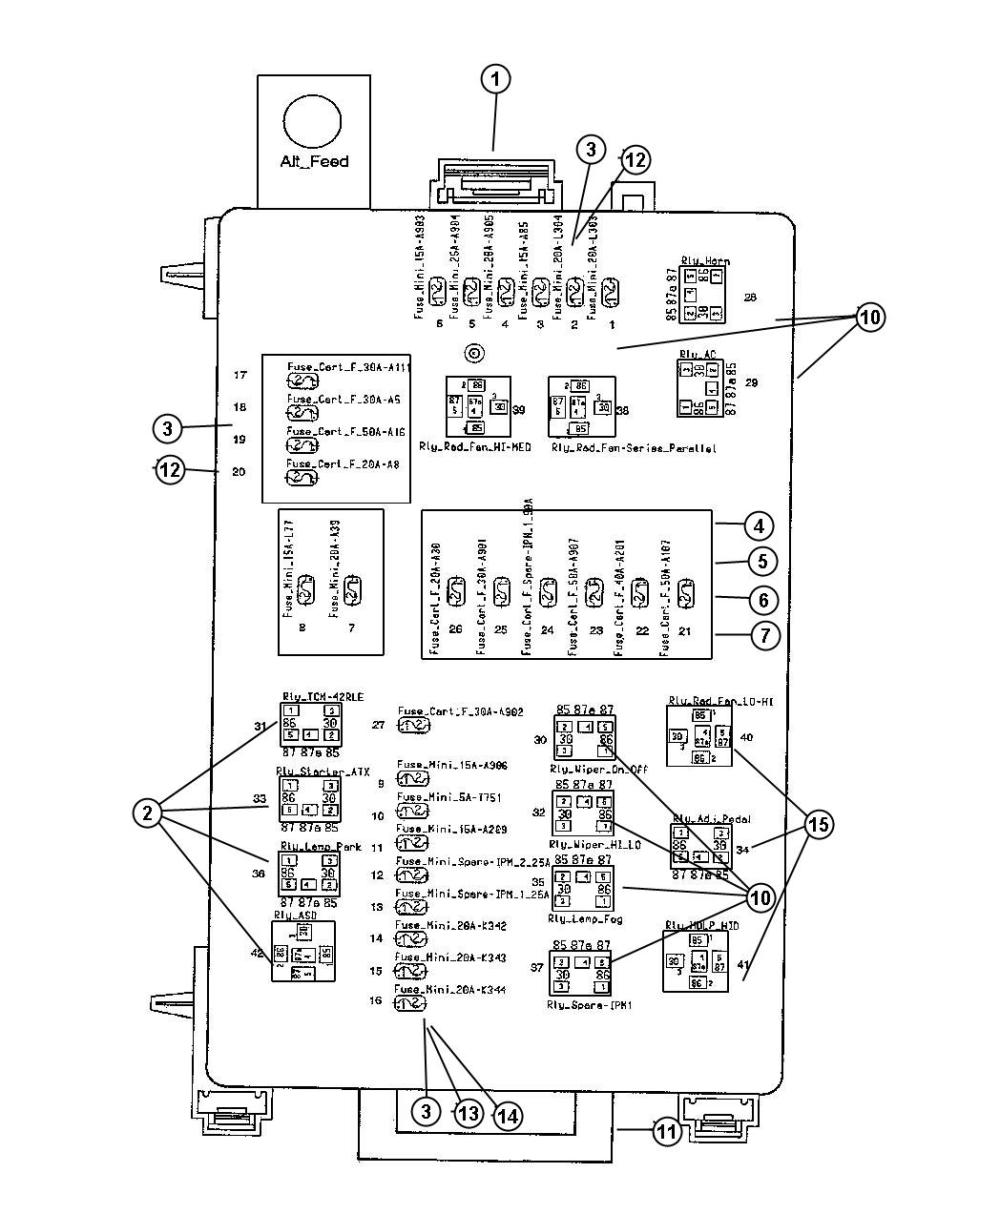 medium resolution of chrysler 300 fuse box 2007 wiring diagrams wni 2007 chrysler 300 rear fuse box diagram chrysler